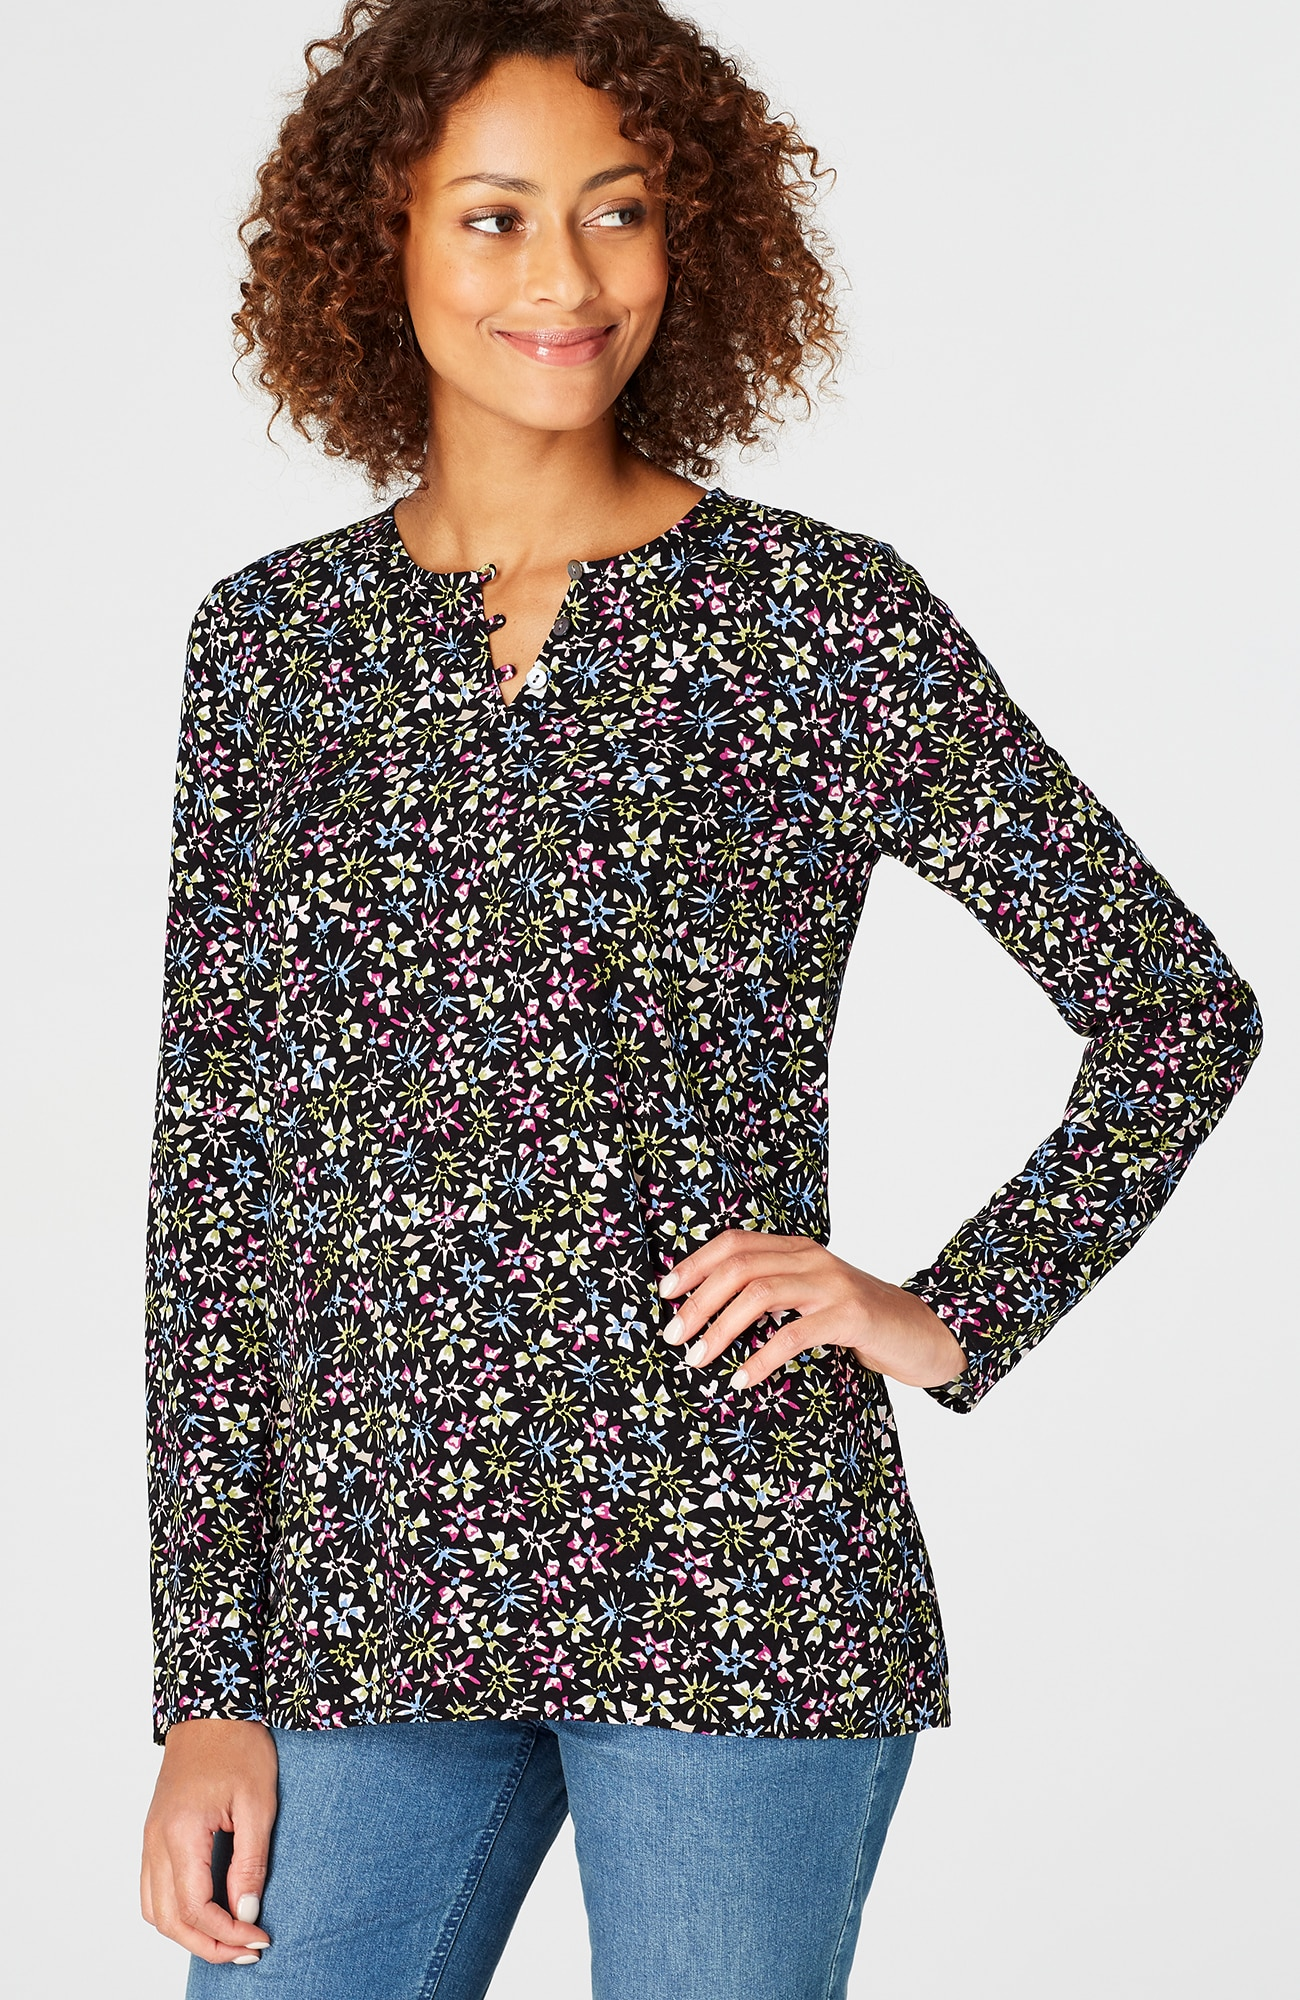 printed rayon elliptical top